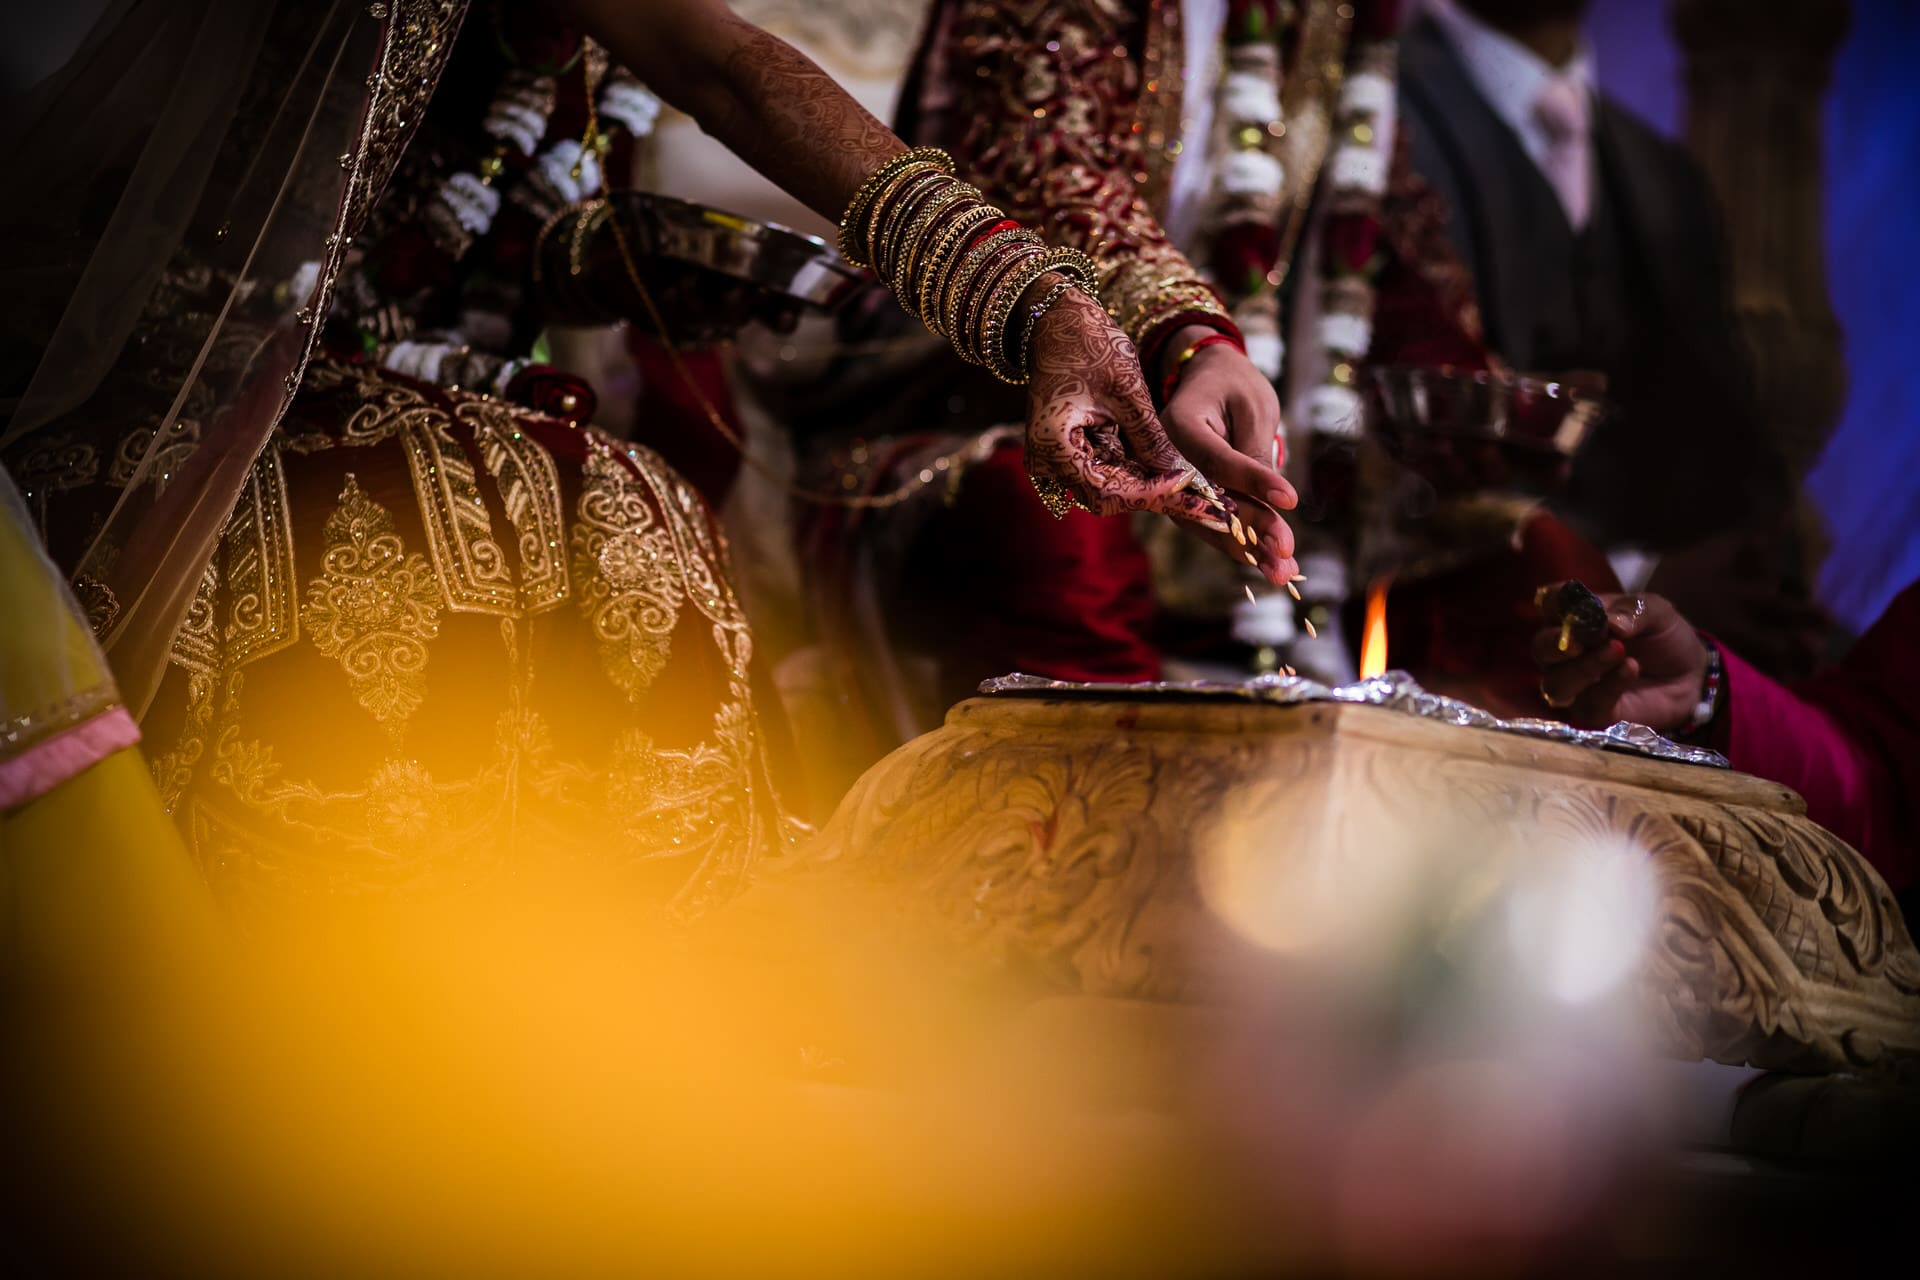 Seeds being thrown in to the fire during Mandap ceremony